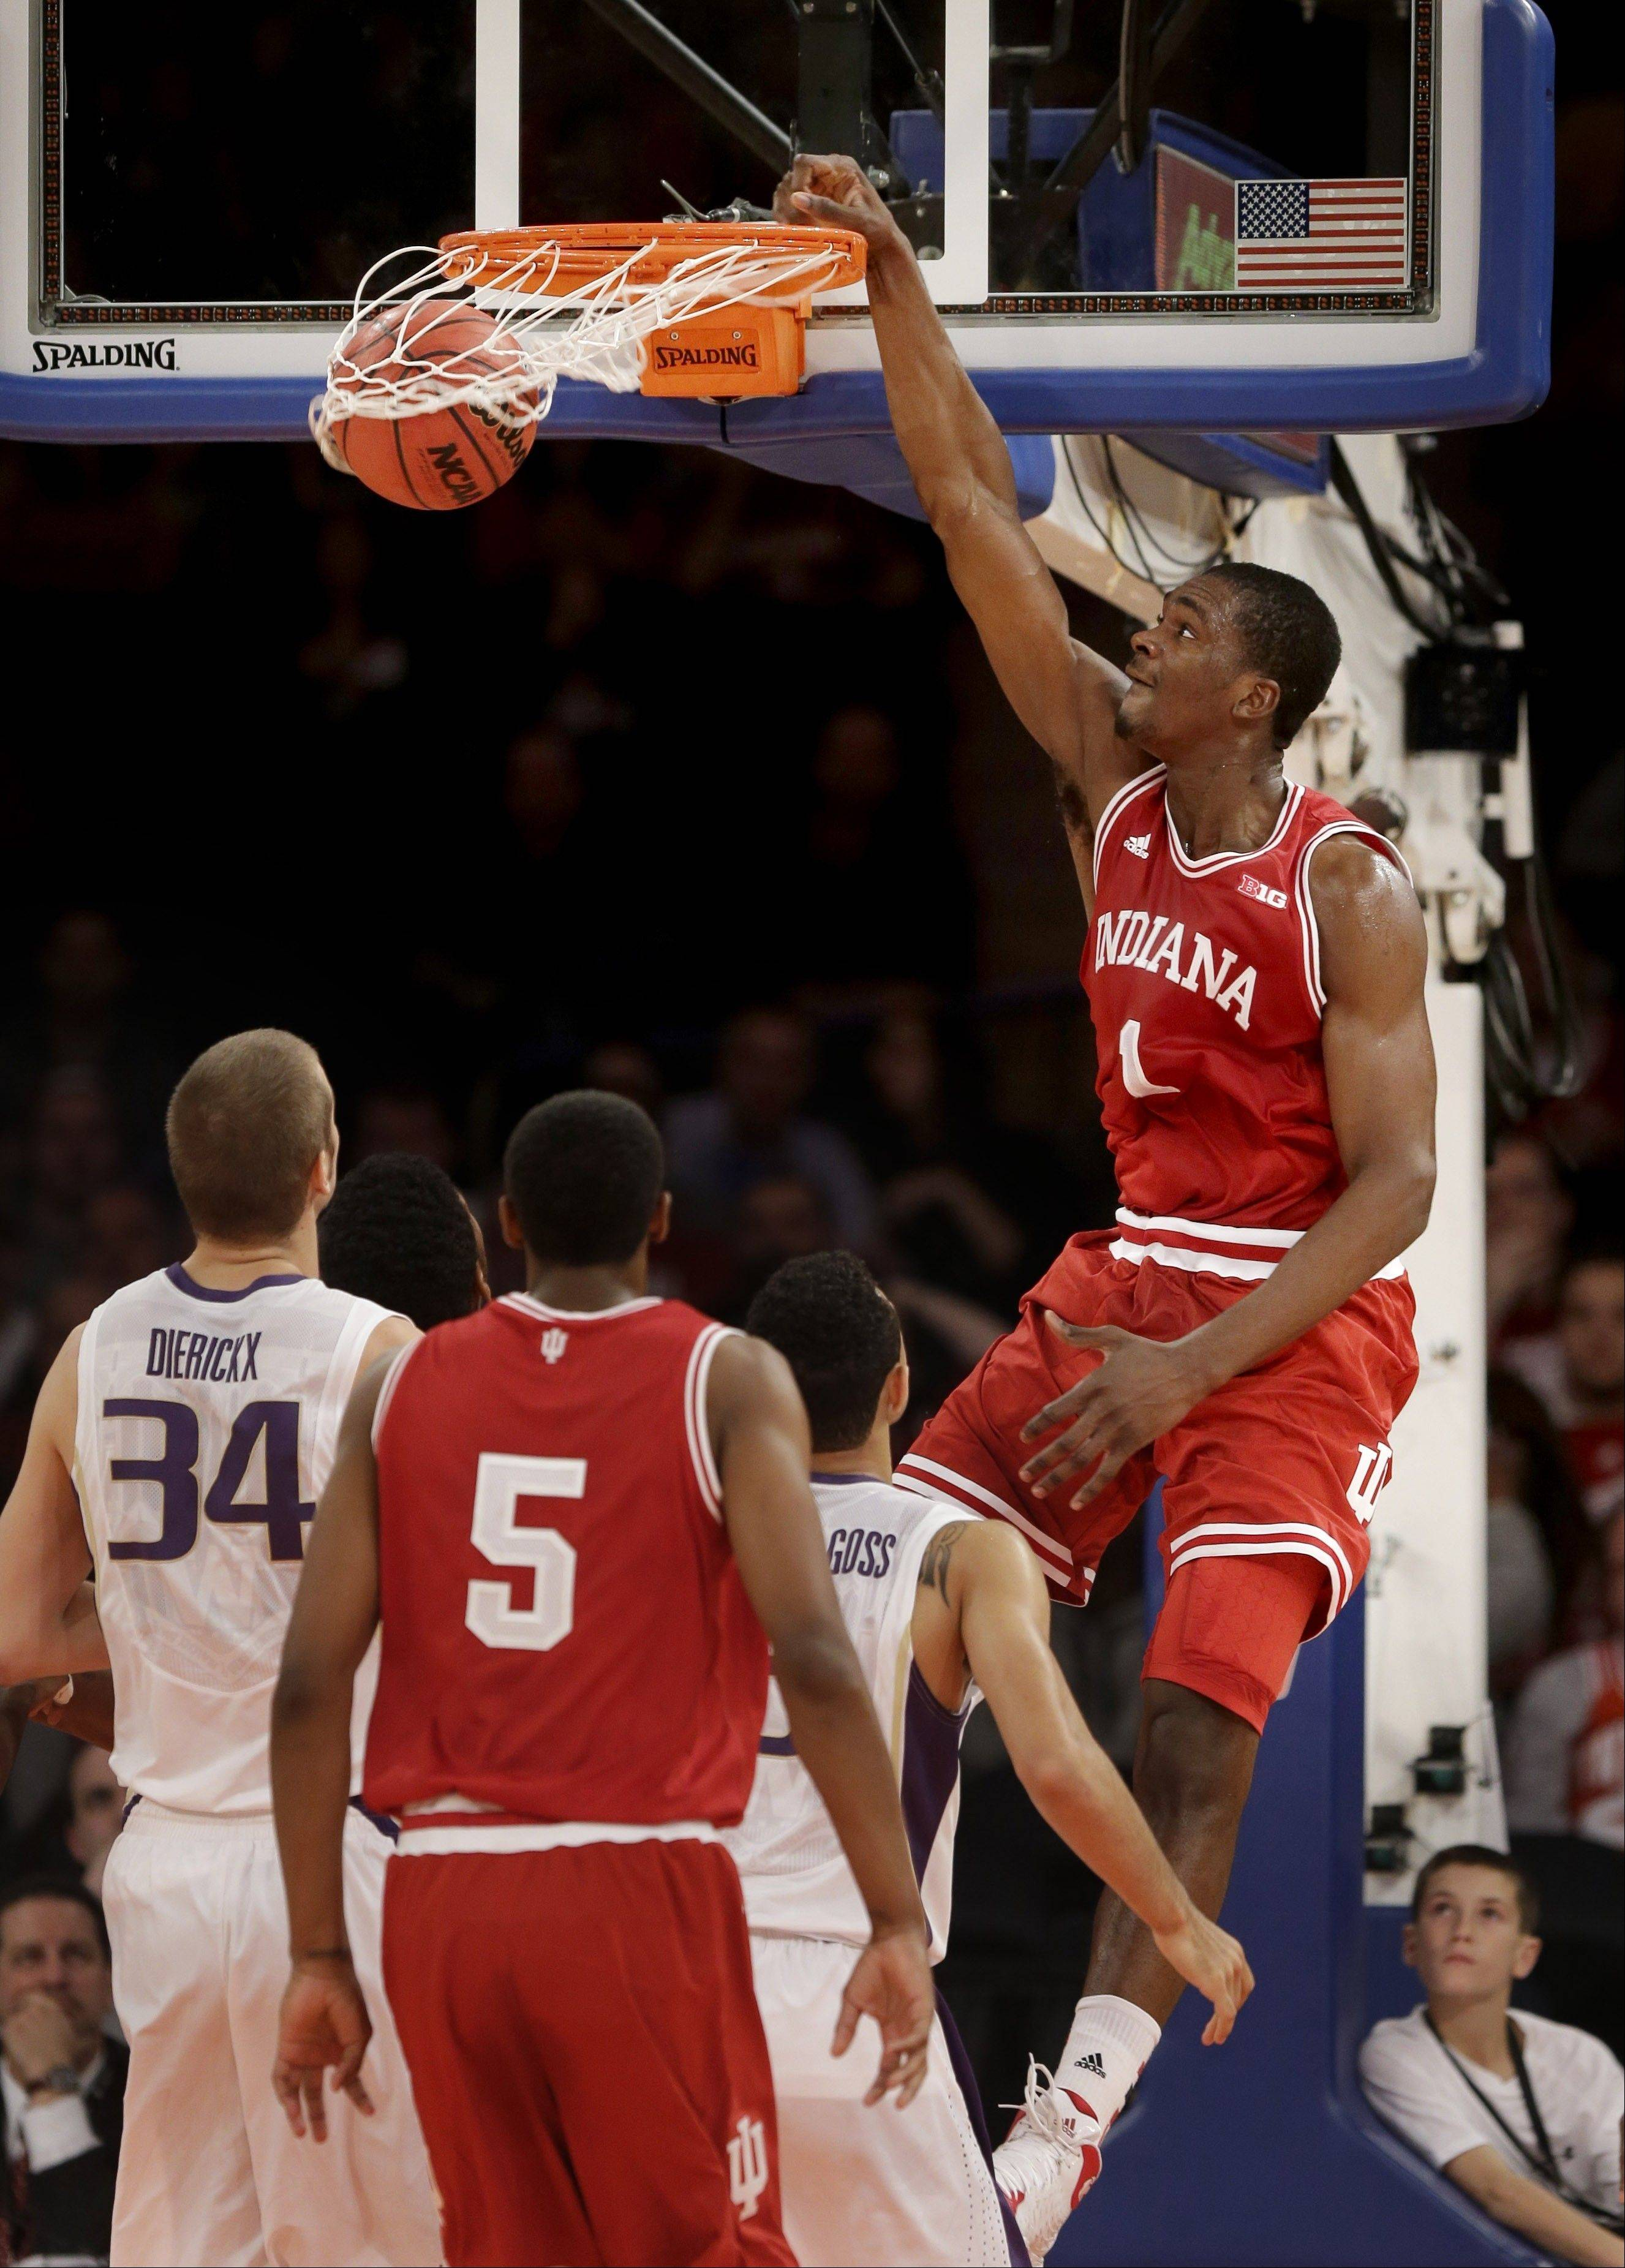 Indiana's Noah Vonleh dunks the ball during the first half of Thursday's game against Washington in New York.